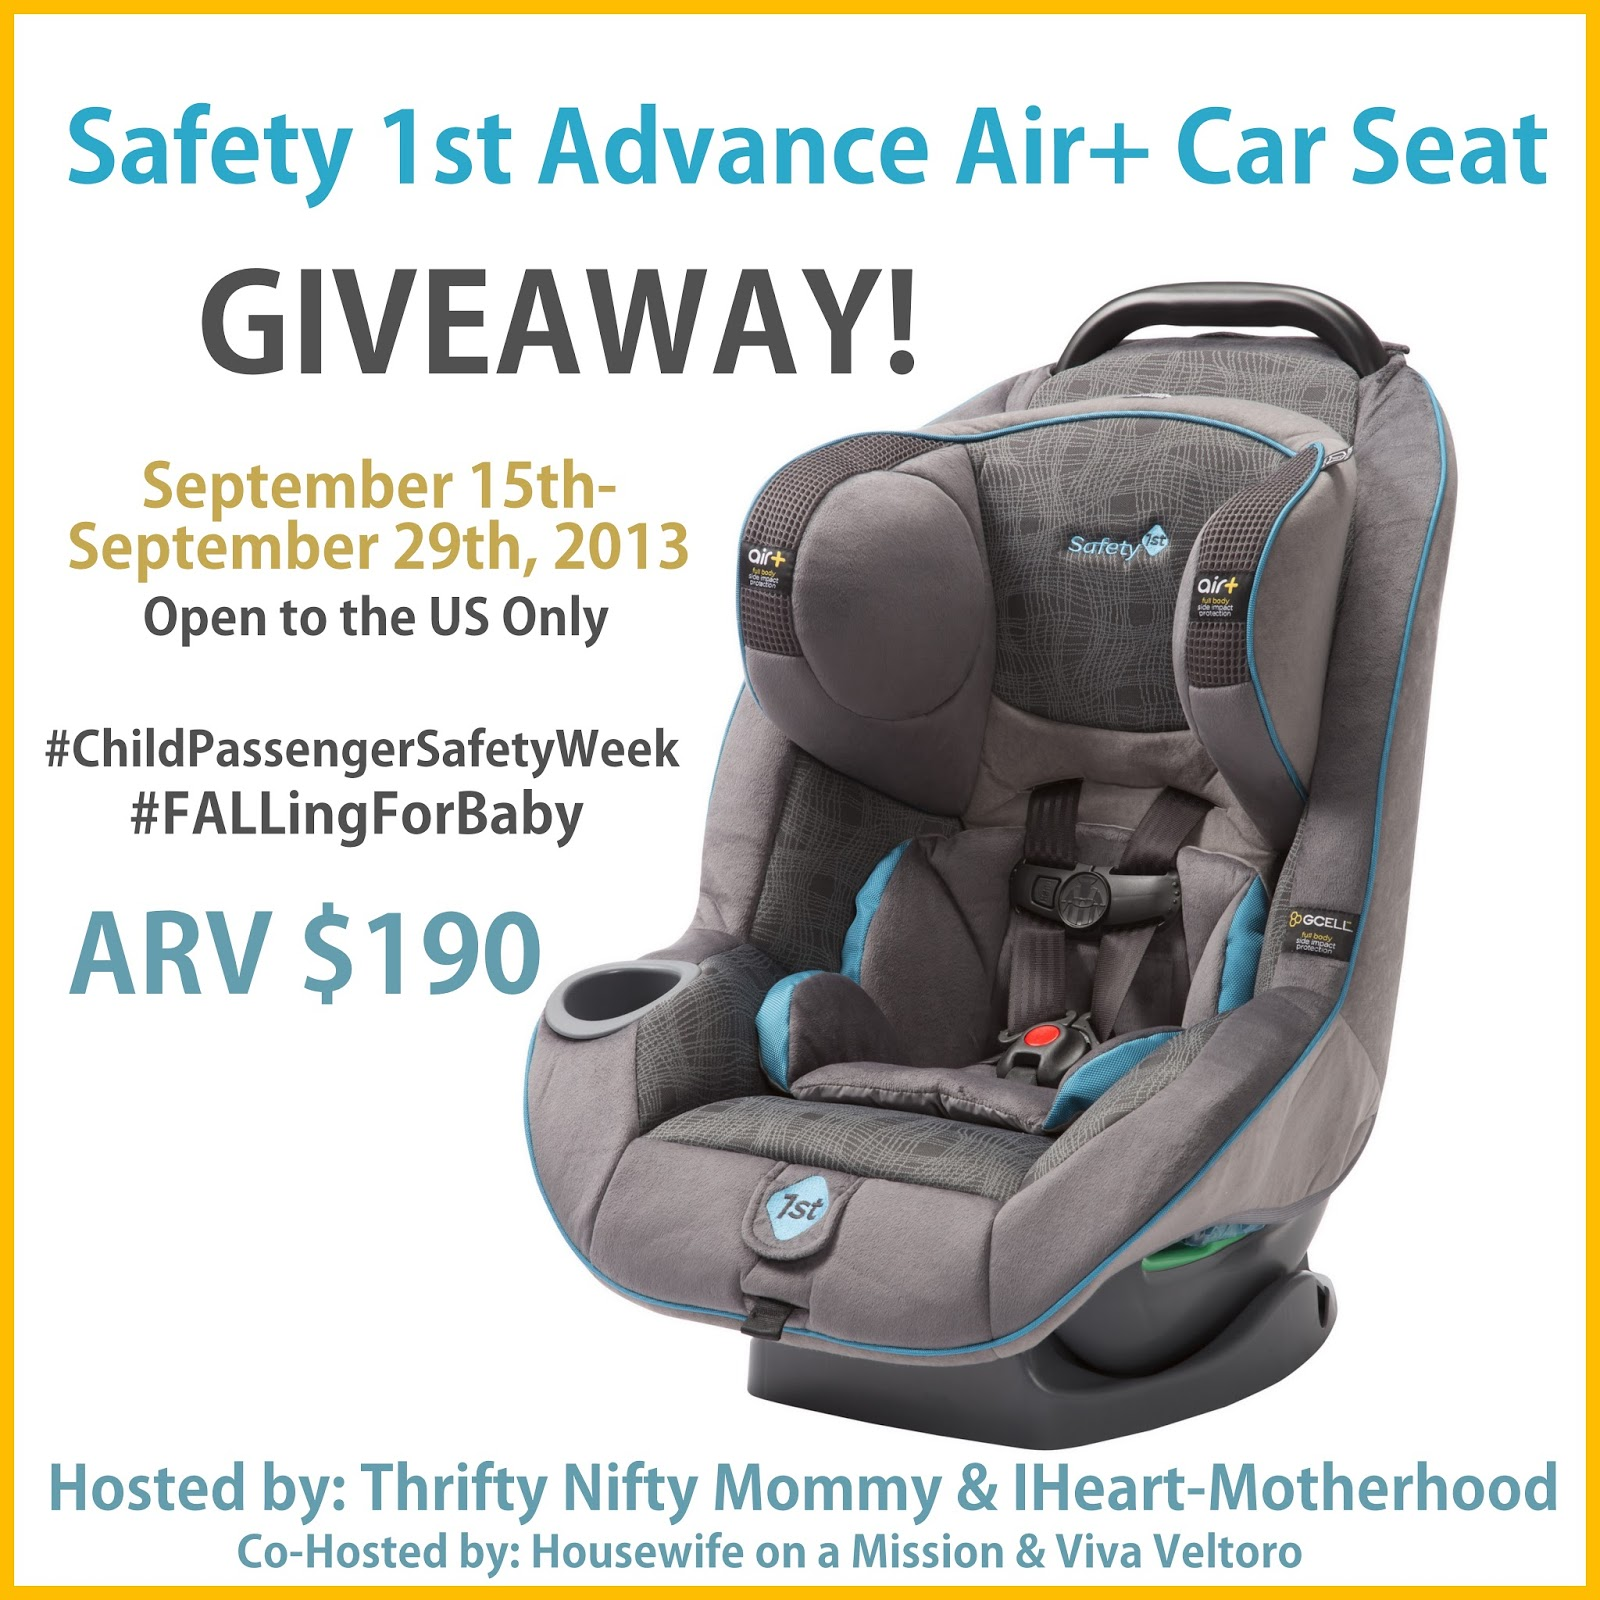 safety 1st advance air car seat giveaway ends 9 29. Black Bedroom Furniture Sets. Home Design Ideas